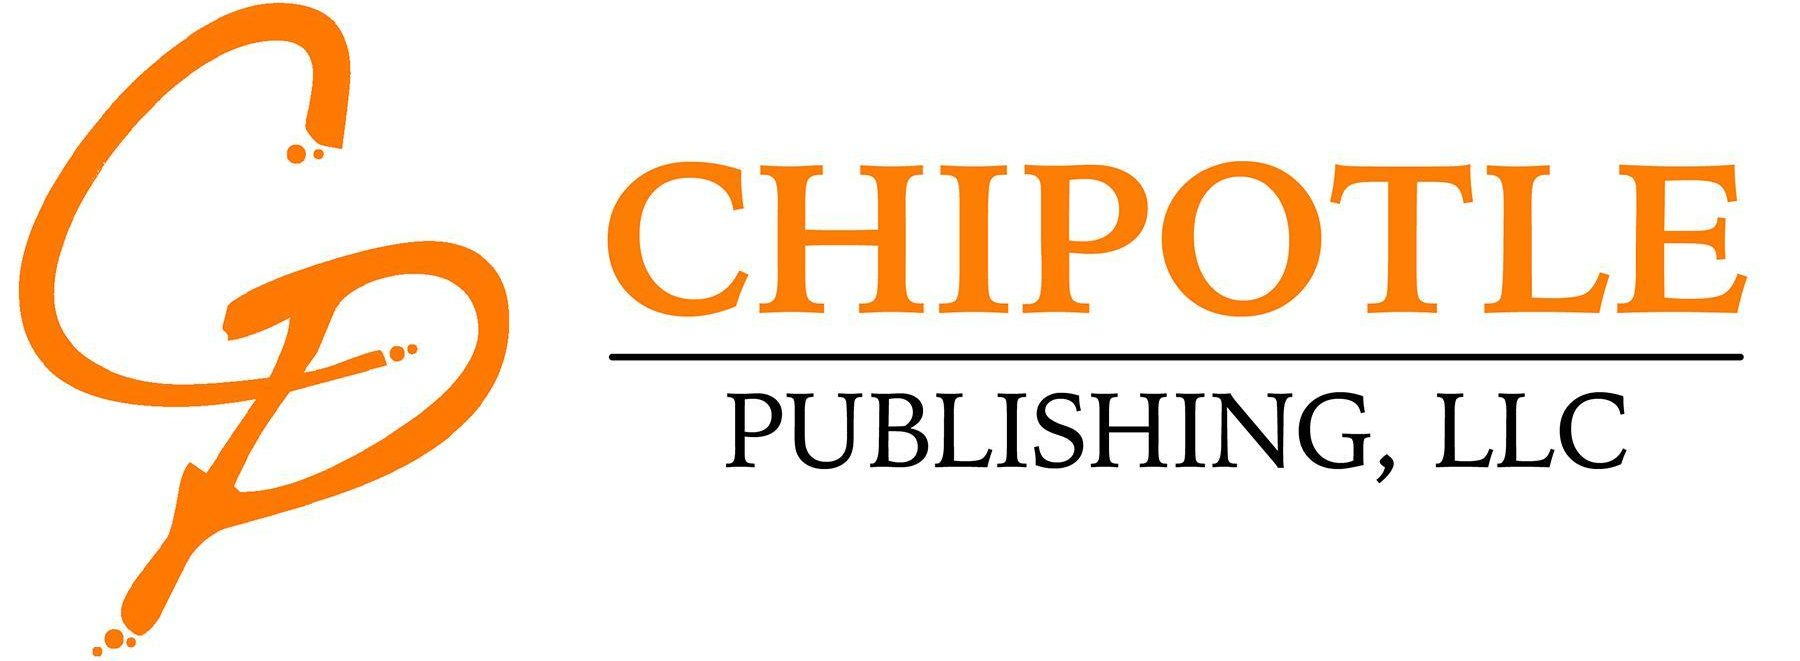 Chipotle Publishing, LLC